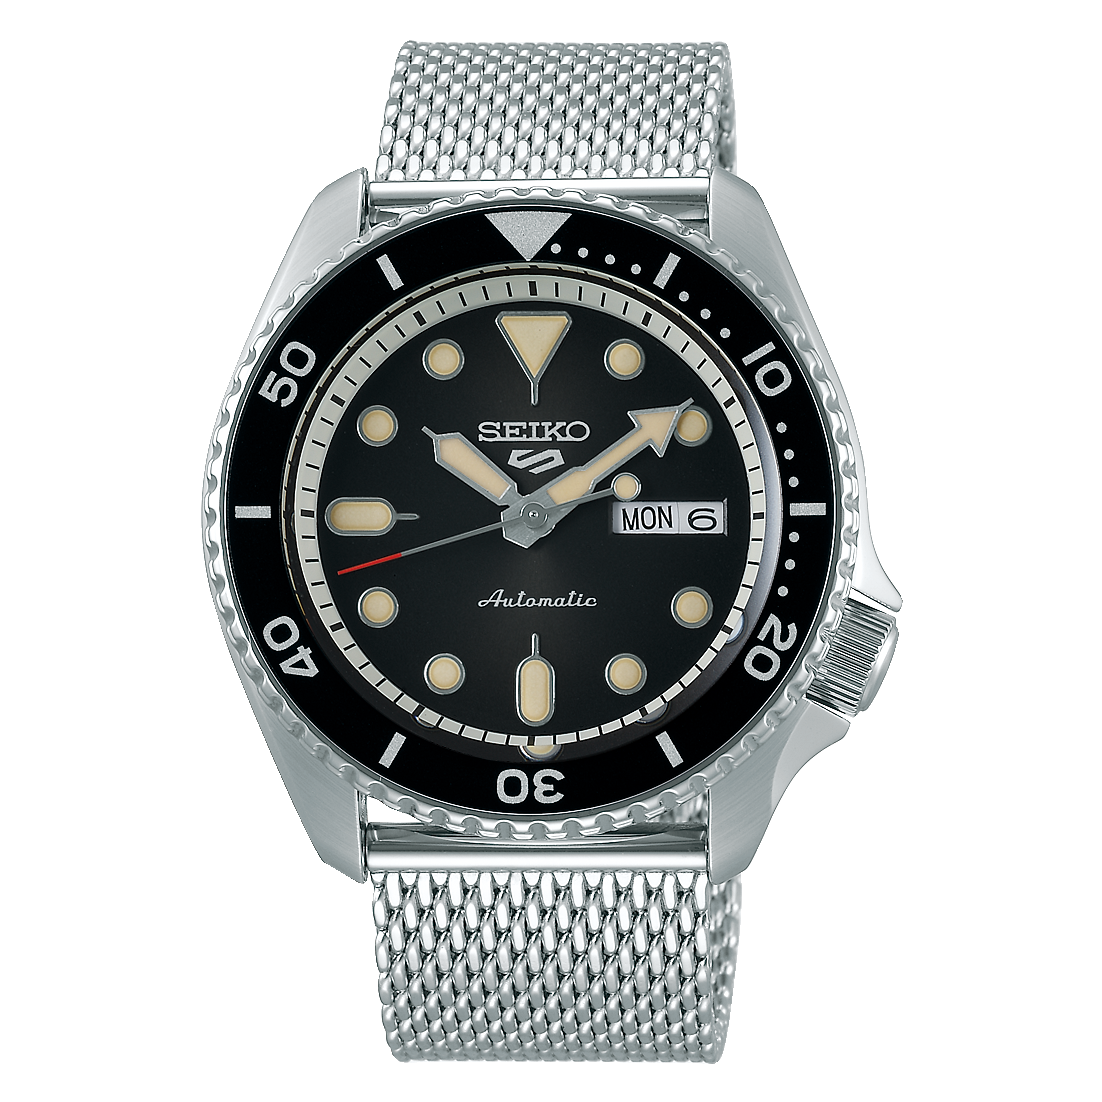 Seiko 5 Sport - Suits Series With Black Dial